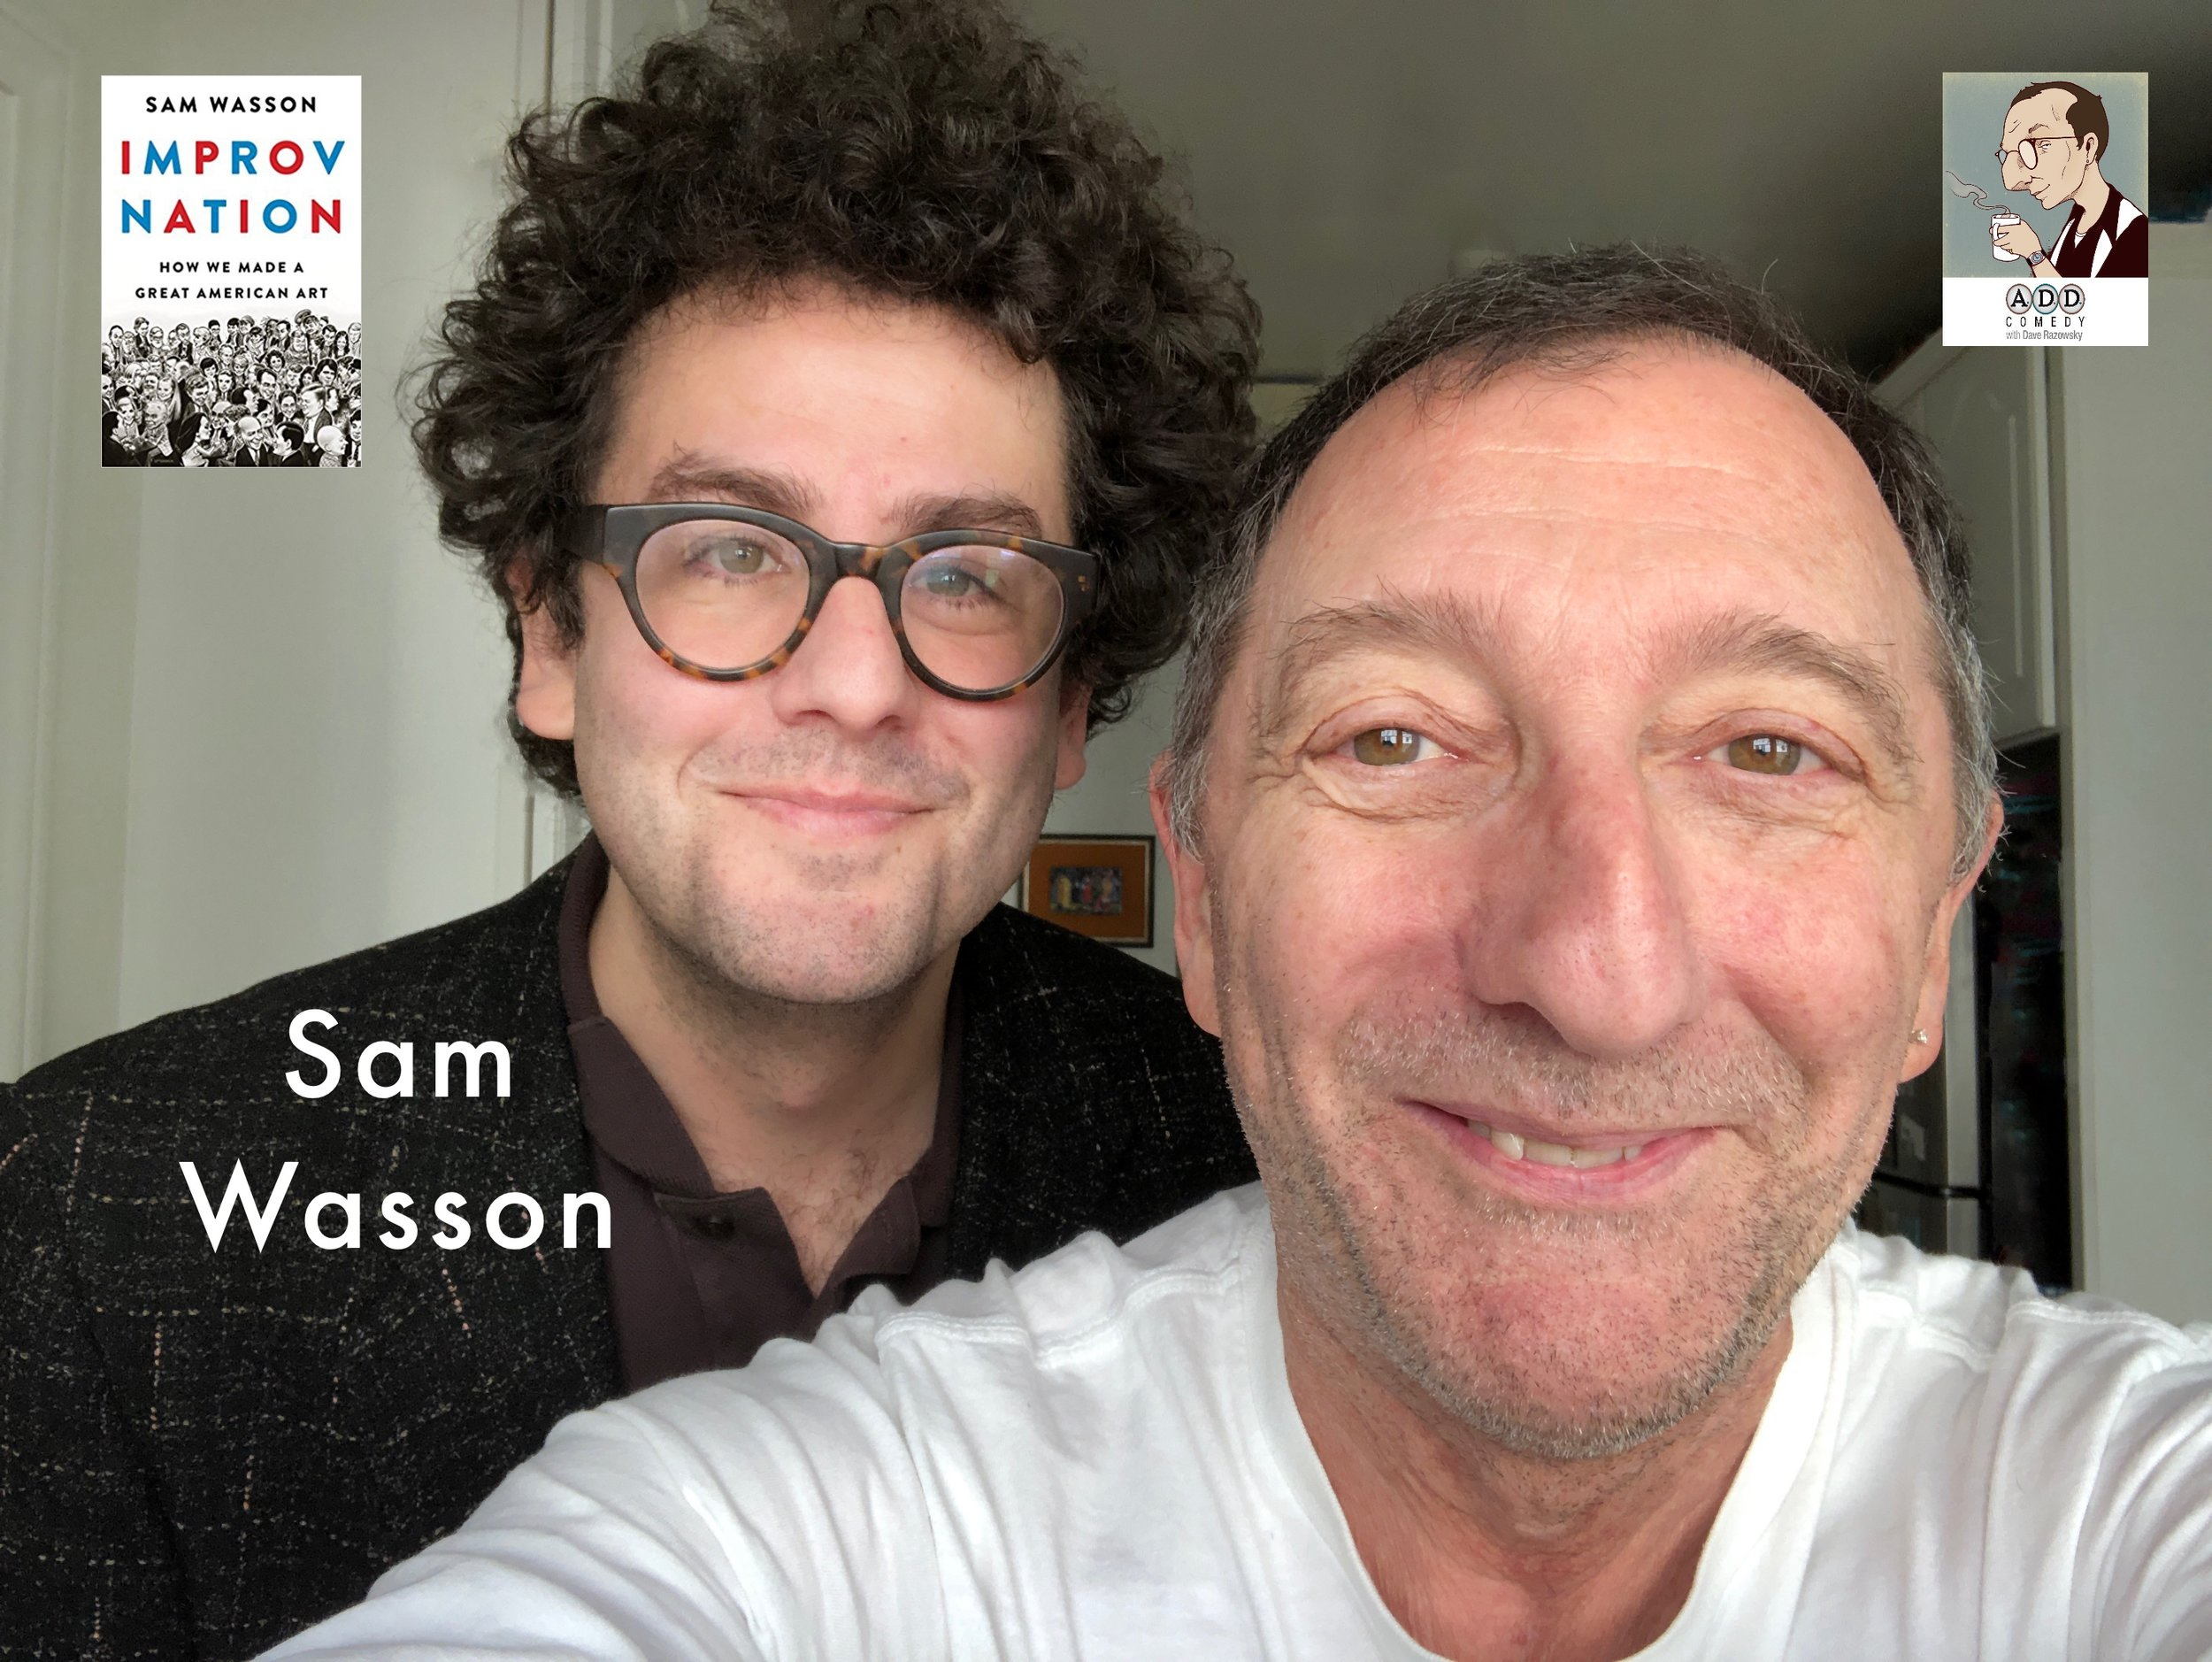 """Love and play are the only things where more is better.""  Today's guest on ADD Comedy with Dave Razowsky is author Sam Wasson. Sam has written books on Bob Fosse, Paul Mazursky, Audrey Hepburn, Blake Edwards, and, the one that brought Sam to  my  attention, ""Improv Nation, How We Made A Great American Art."" This is the only book I've ever read on how theatrical improvisation as we now know it came to be. It's funny, smart, informative, heartbreaking, and alive. In other words, it's just like a great improv scene. Our conversation bounds from improv inspiration, to what does it mean to play, to passion and creativity, to saying yes.   It's like an episode of Fresh Air, but with more cursing.    Hear it here!"